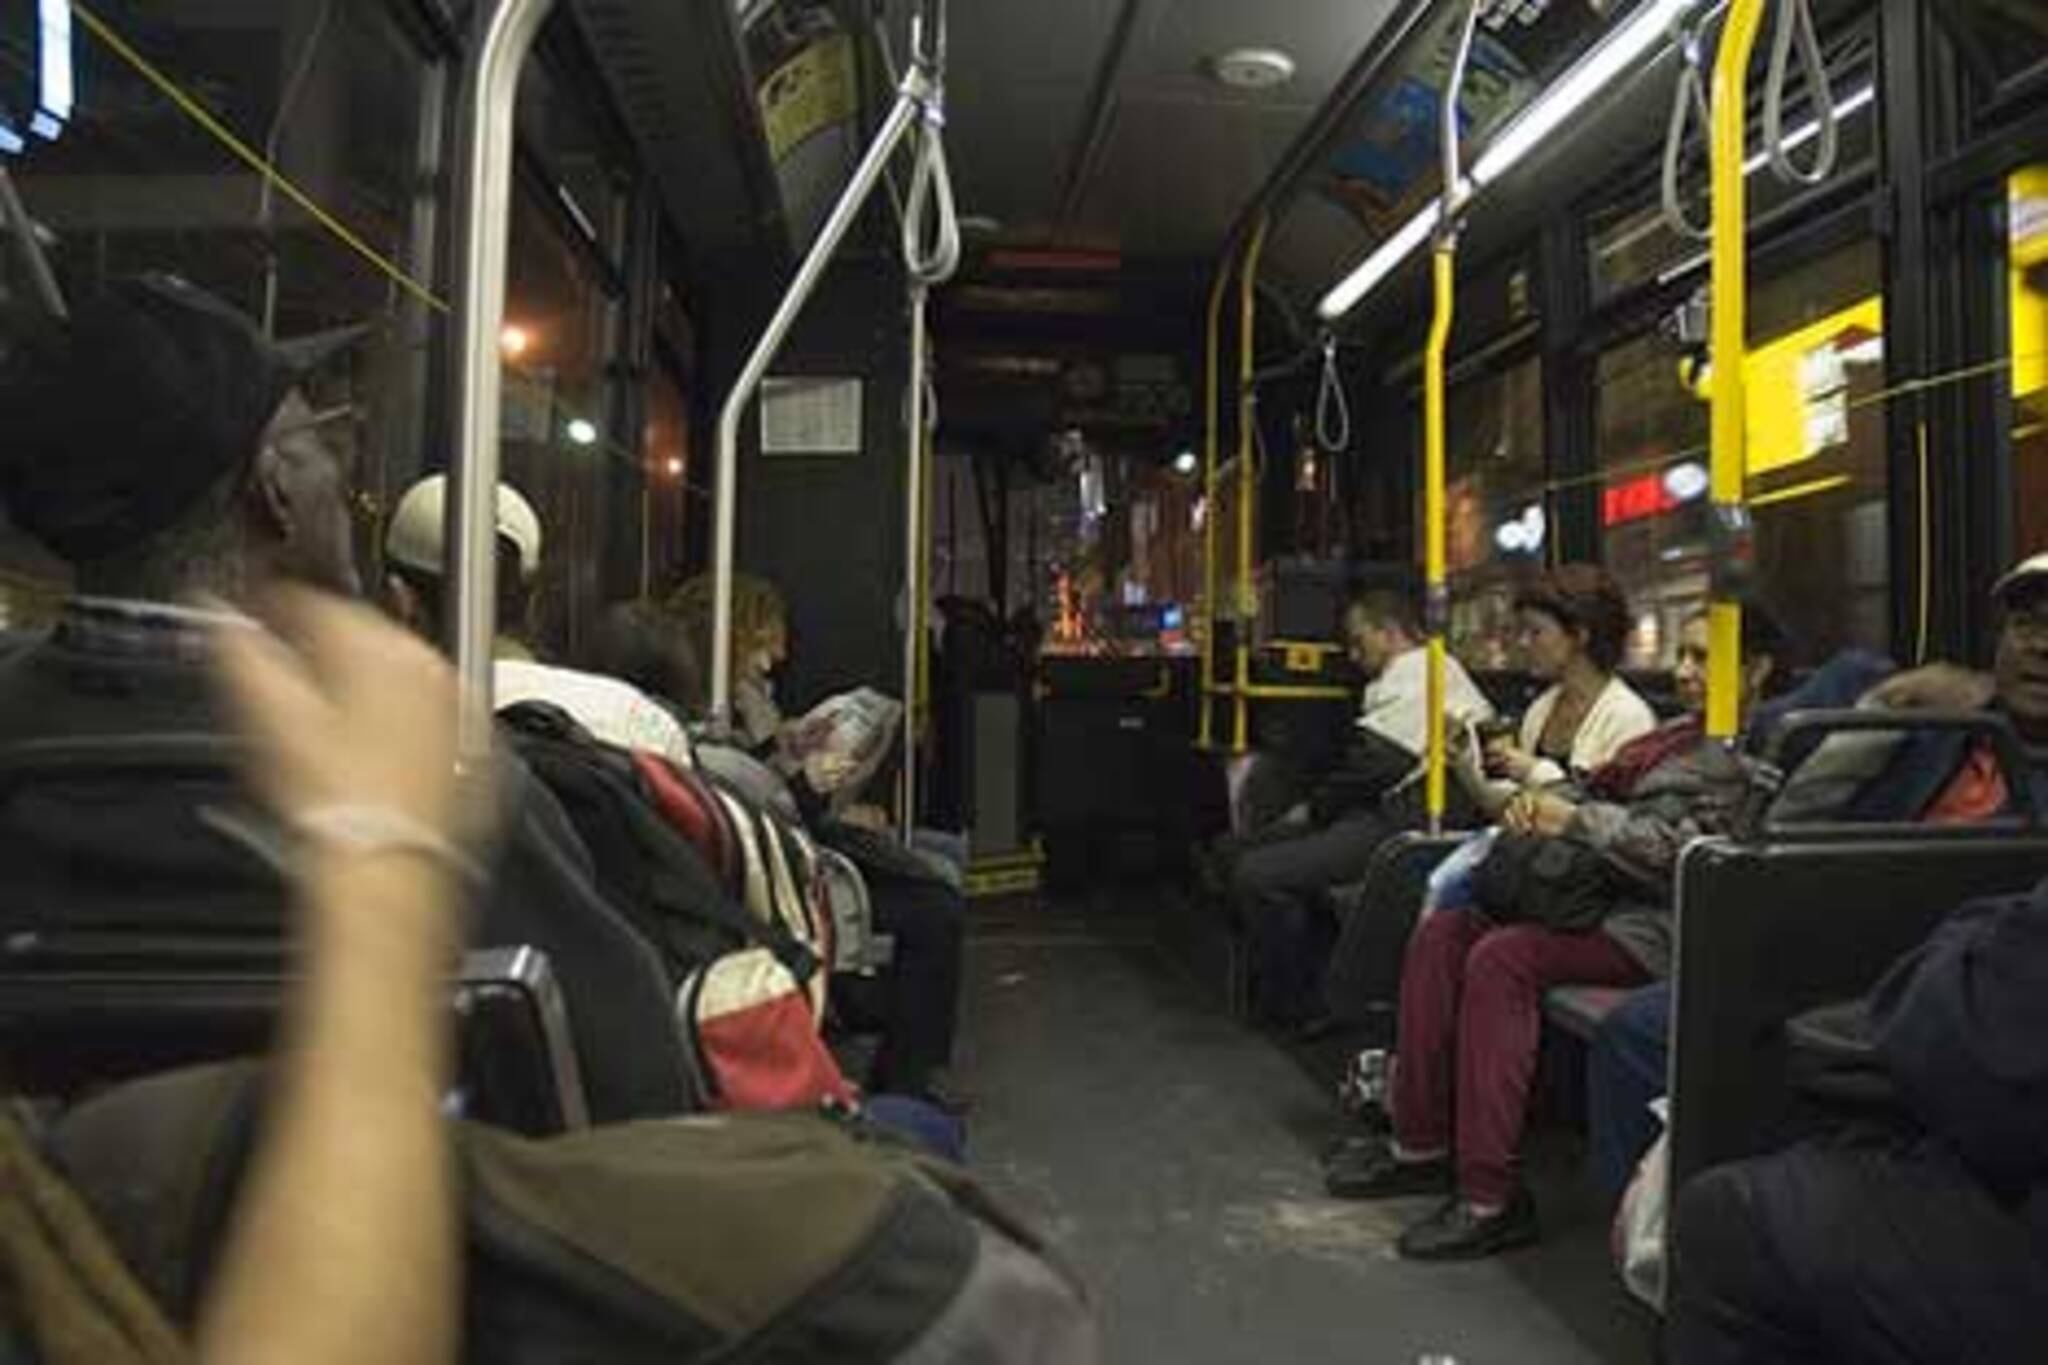 If the TTC looks favourably at 24 hour subway service, the dreay Blue-Night may be a thing of the past